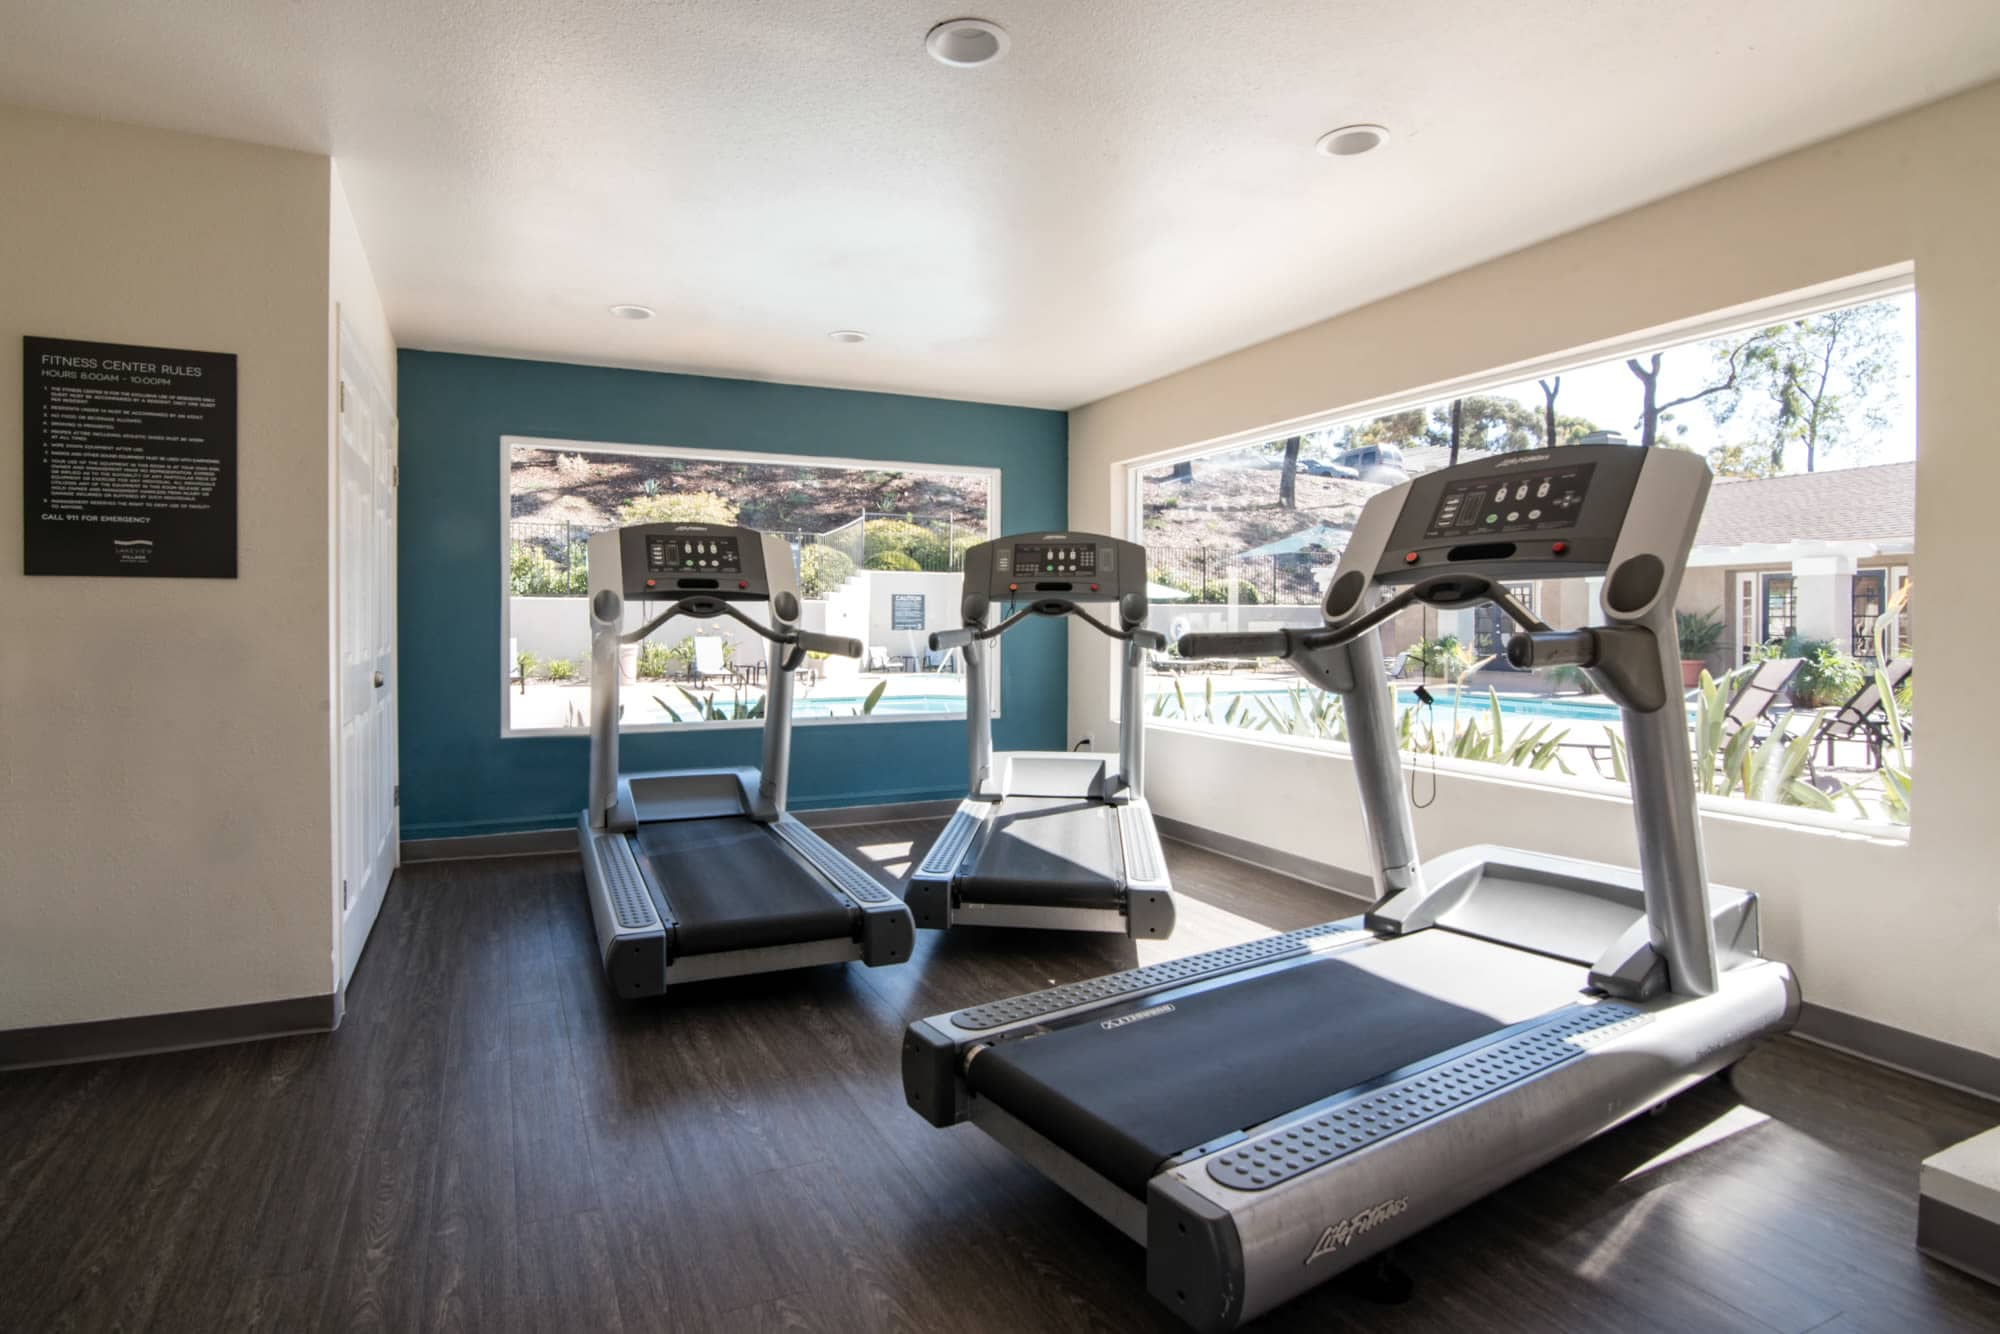 Newly renovated fitness center with large windows that look out to pool area at Lakeview Village Apartments in Spring Valley, California